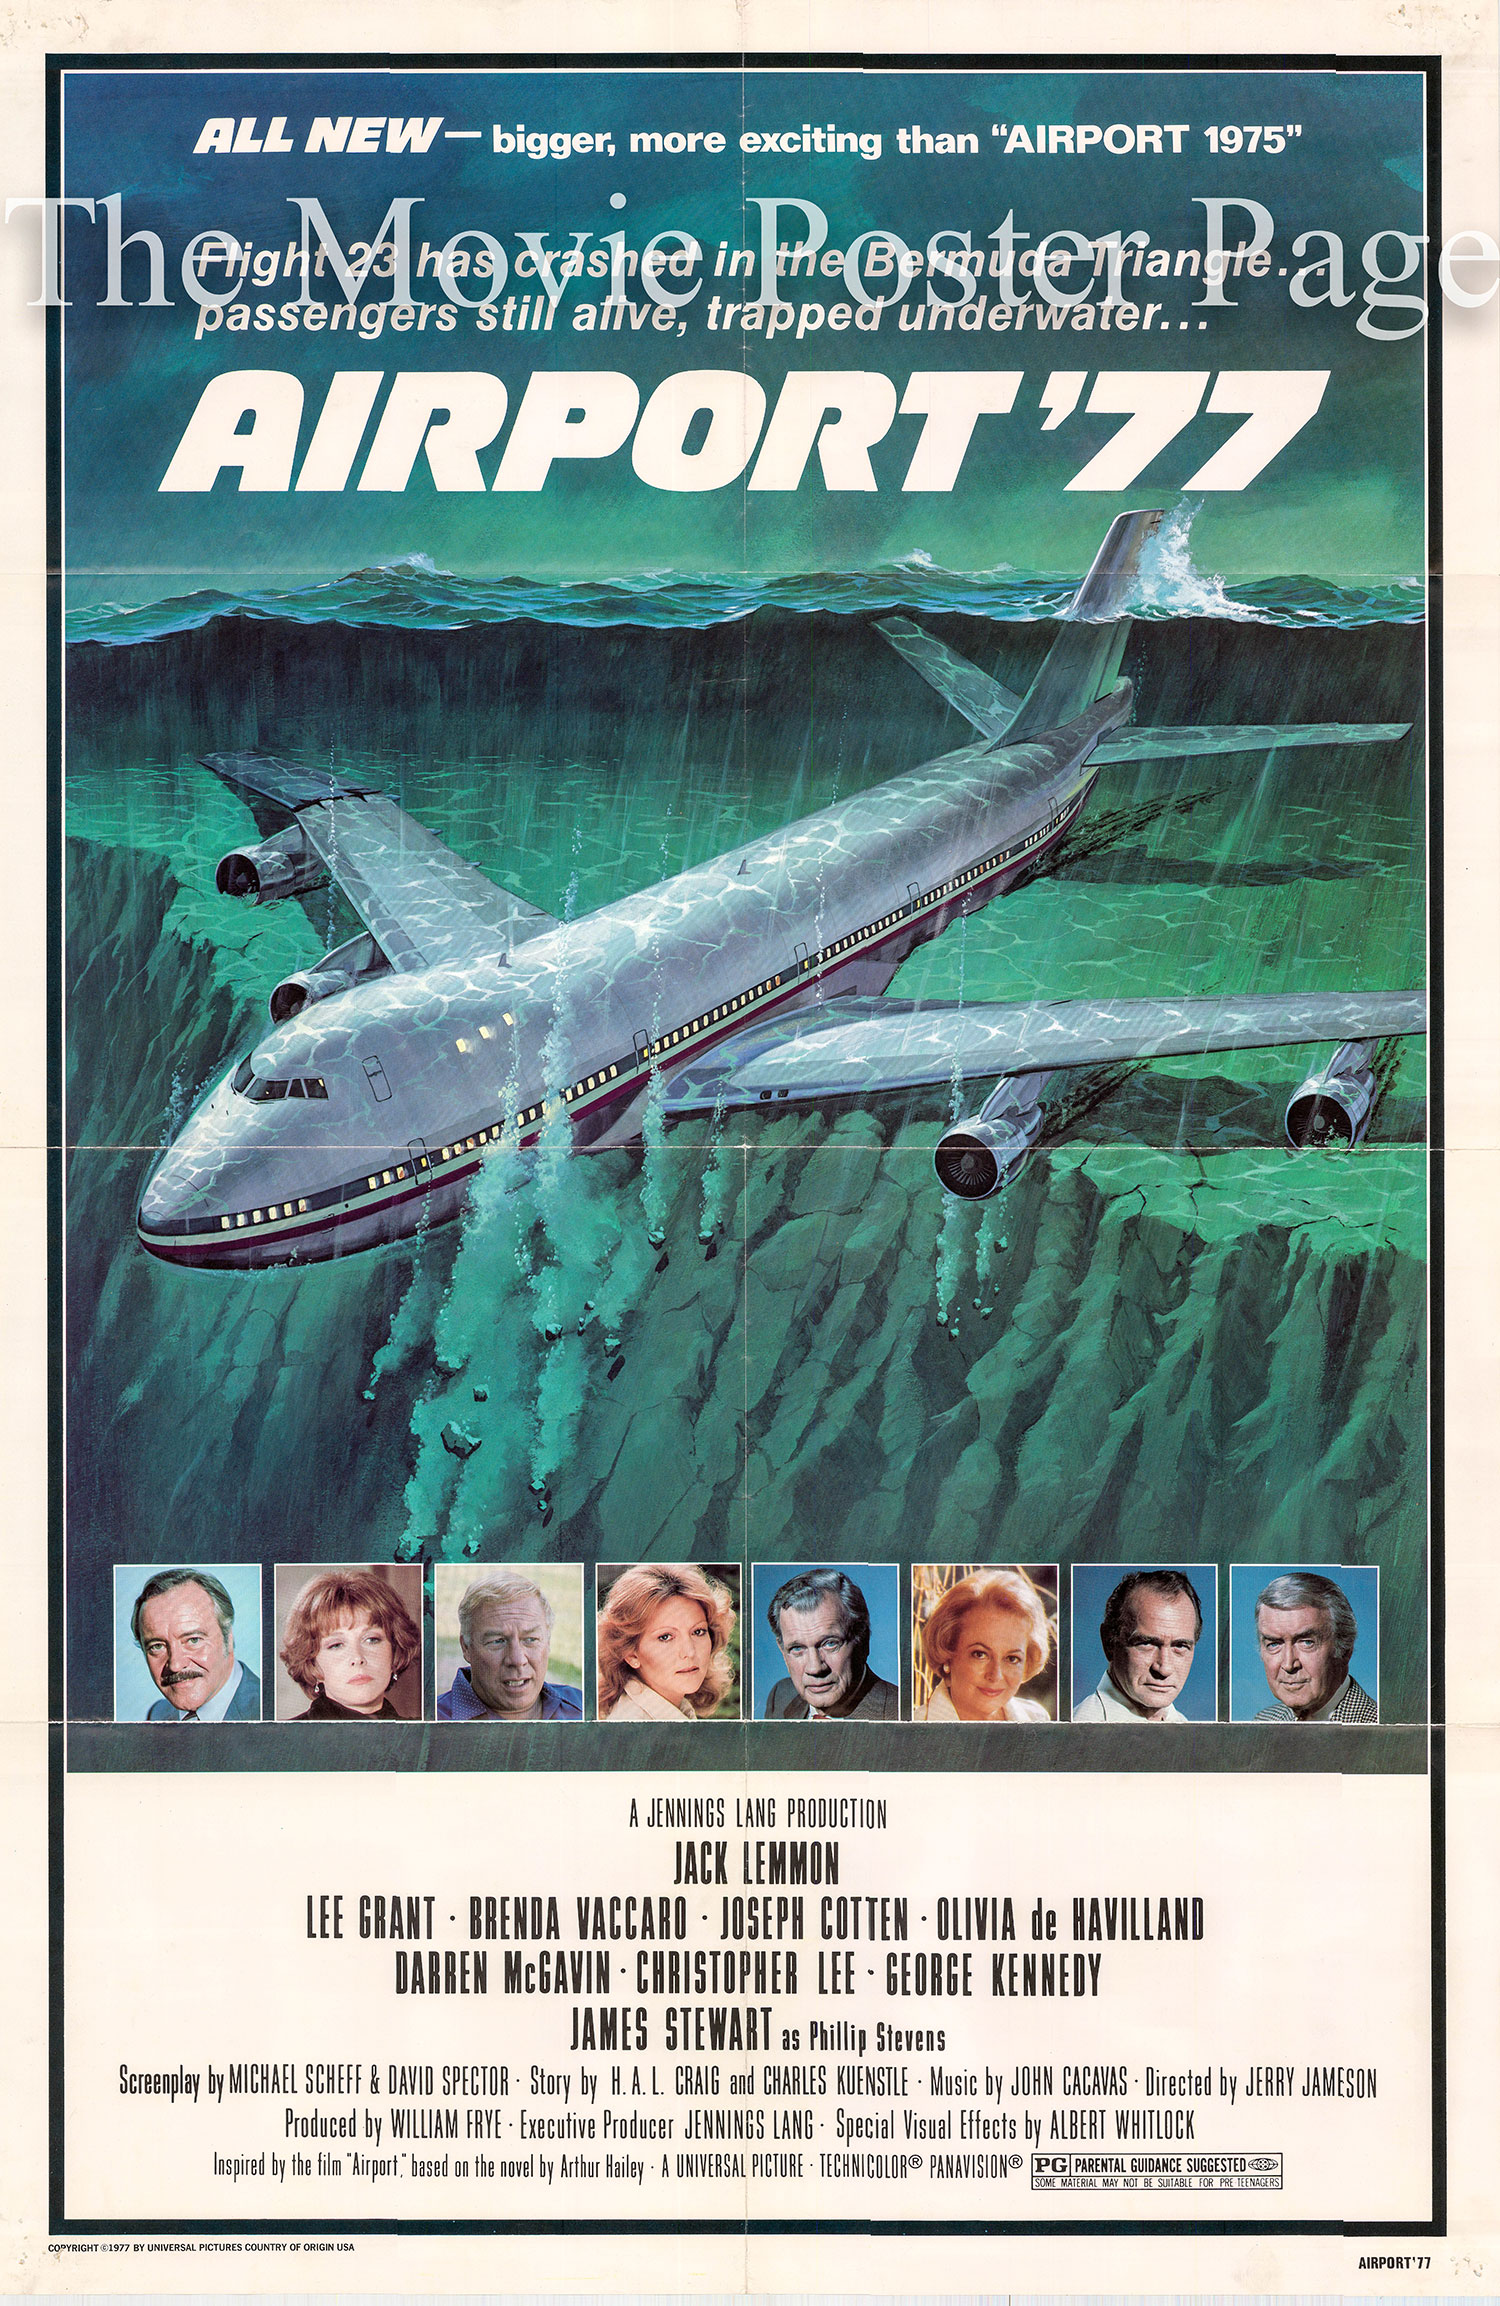 Pictured is a US promotional one-sheet for the 1977 Jerry Jameson film Airport 77 starring Jack Lemmon as Captain Don Galagher.